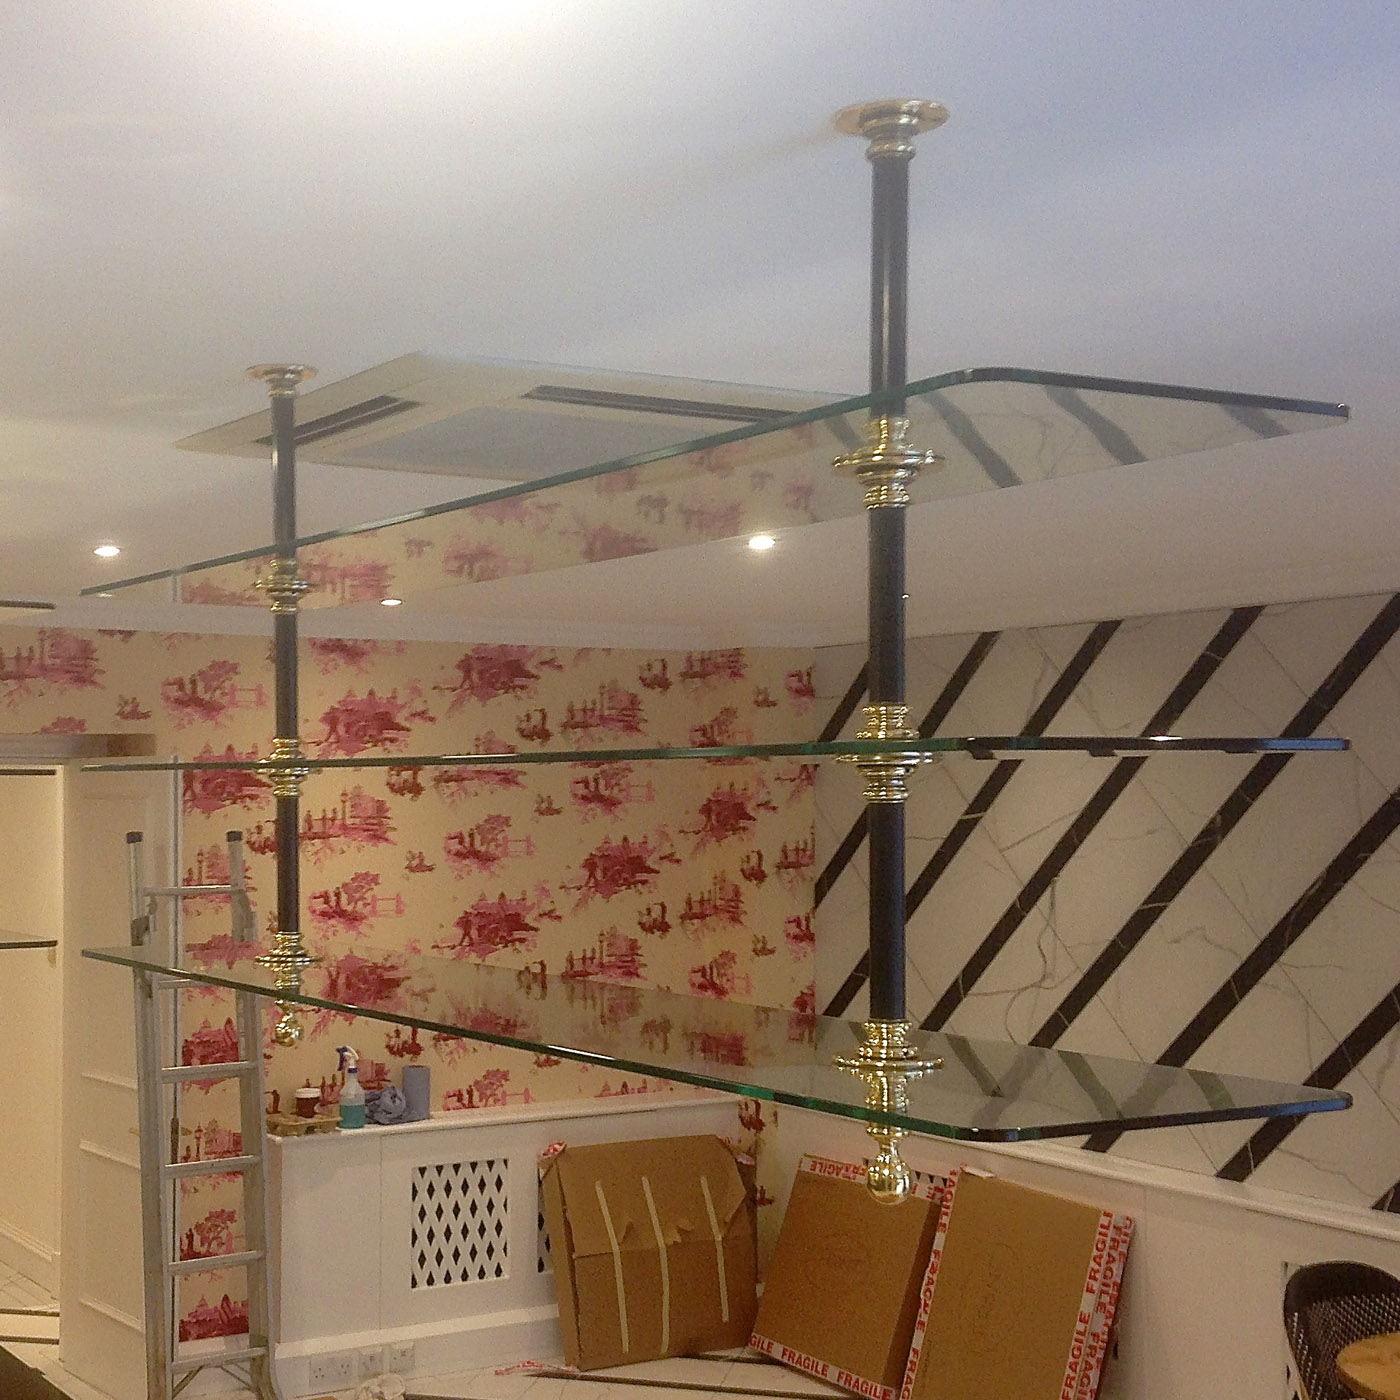 Nickel Plated Ceiling Rack With Glass Shelves Andrew